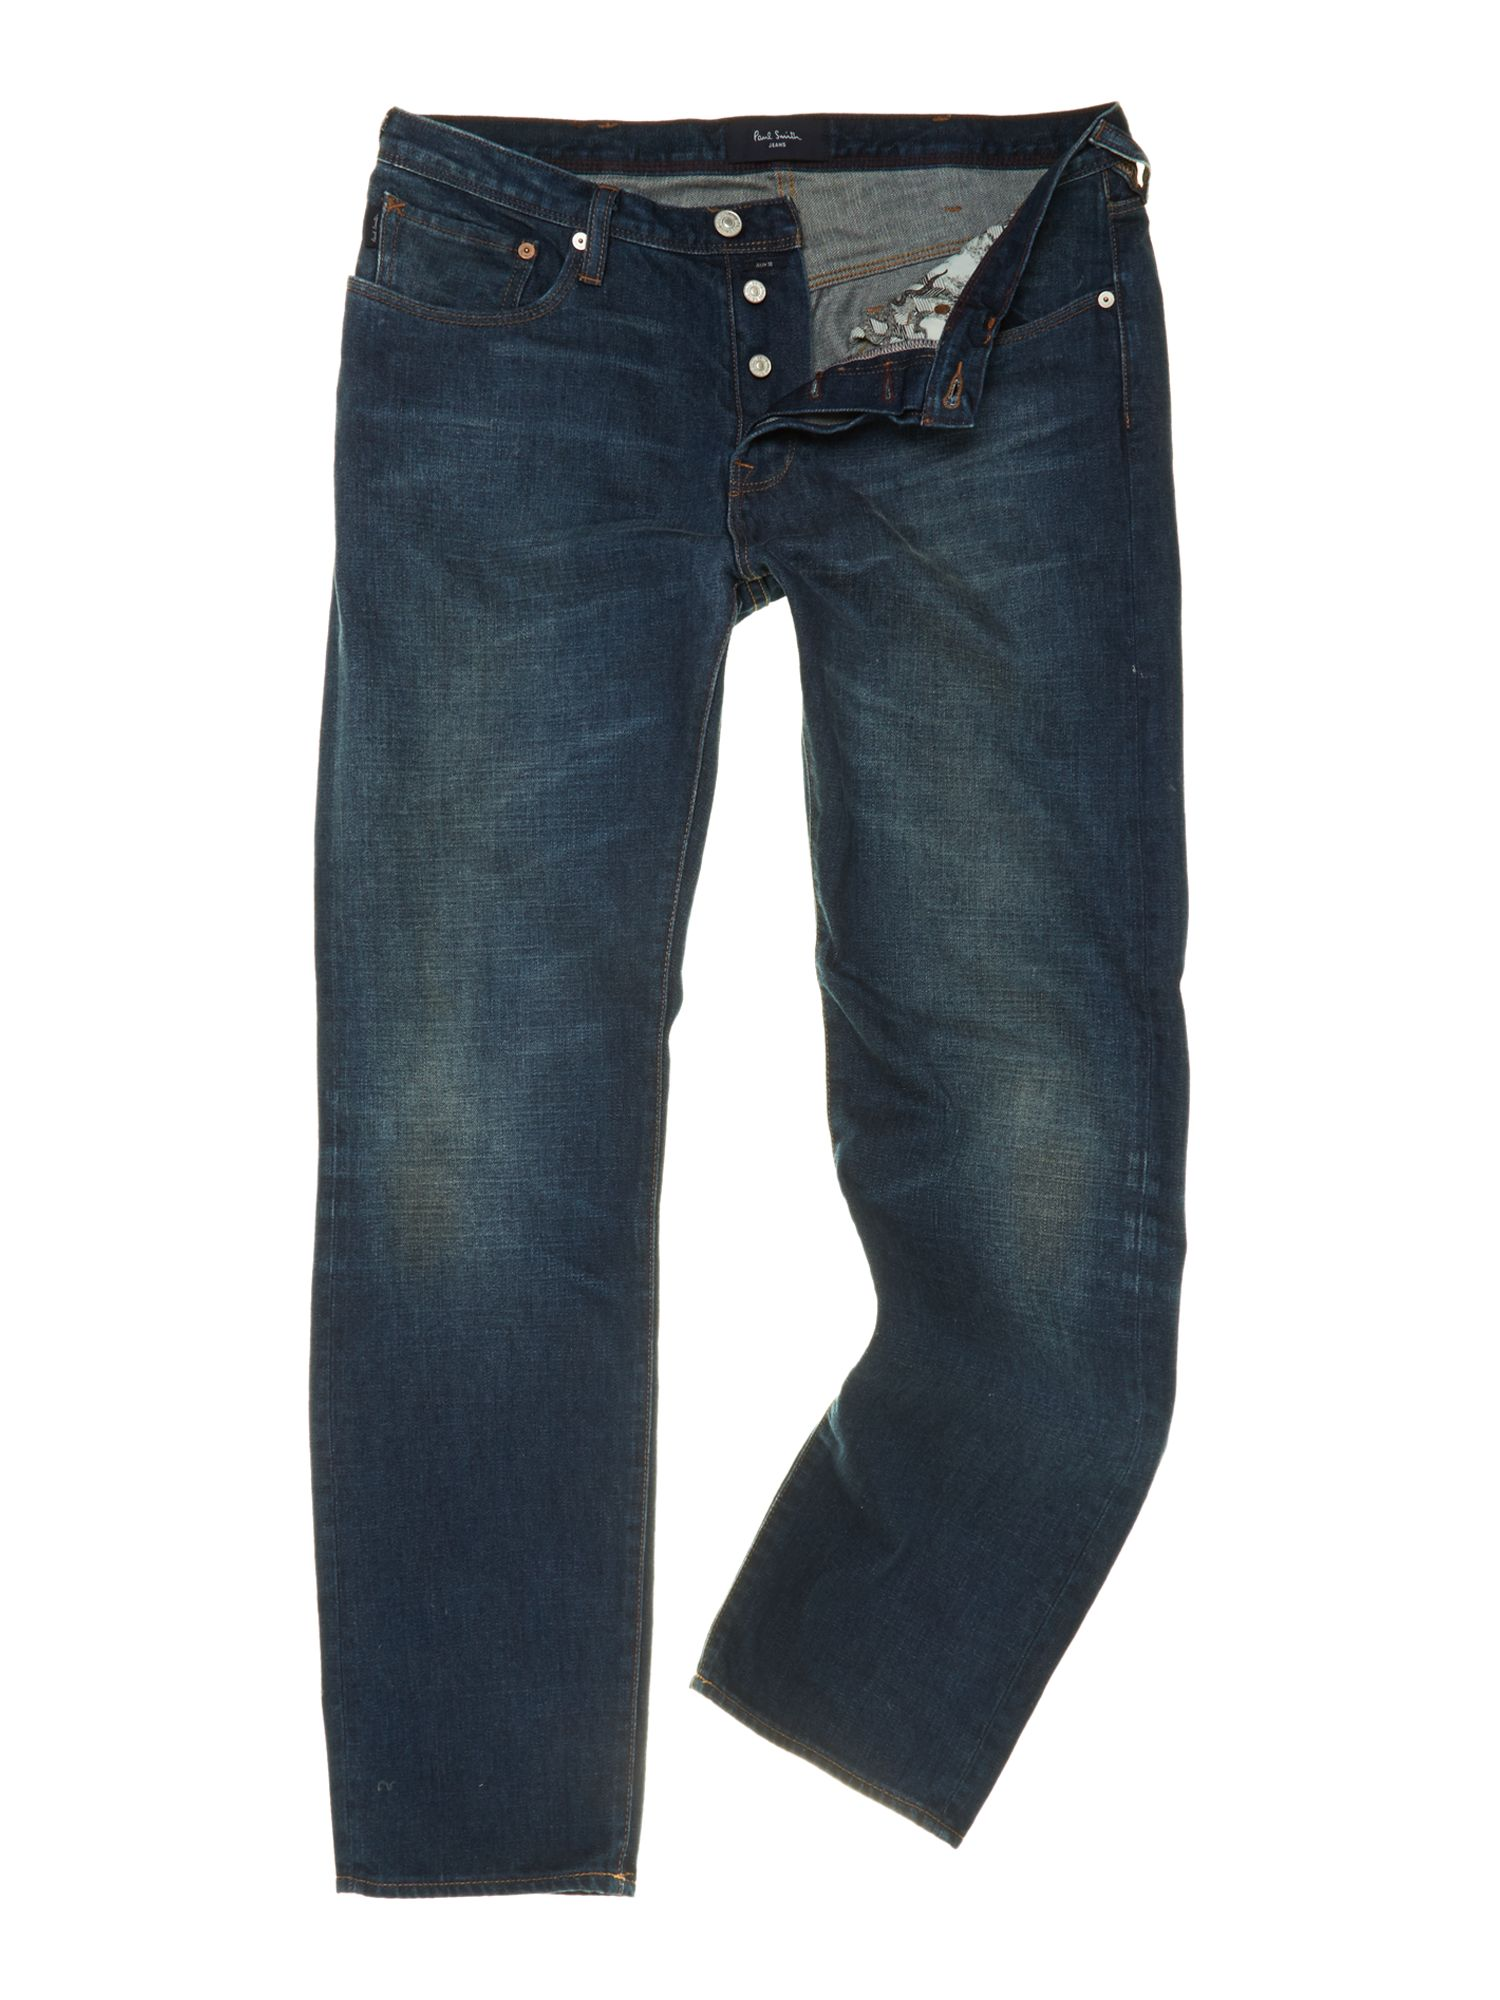 Classic fit broken twill antique wash jean